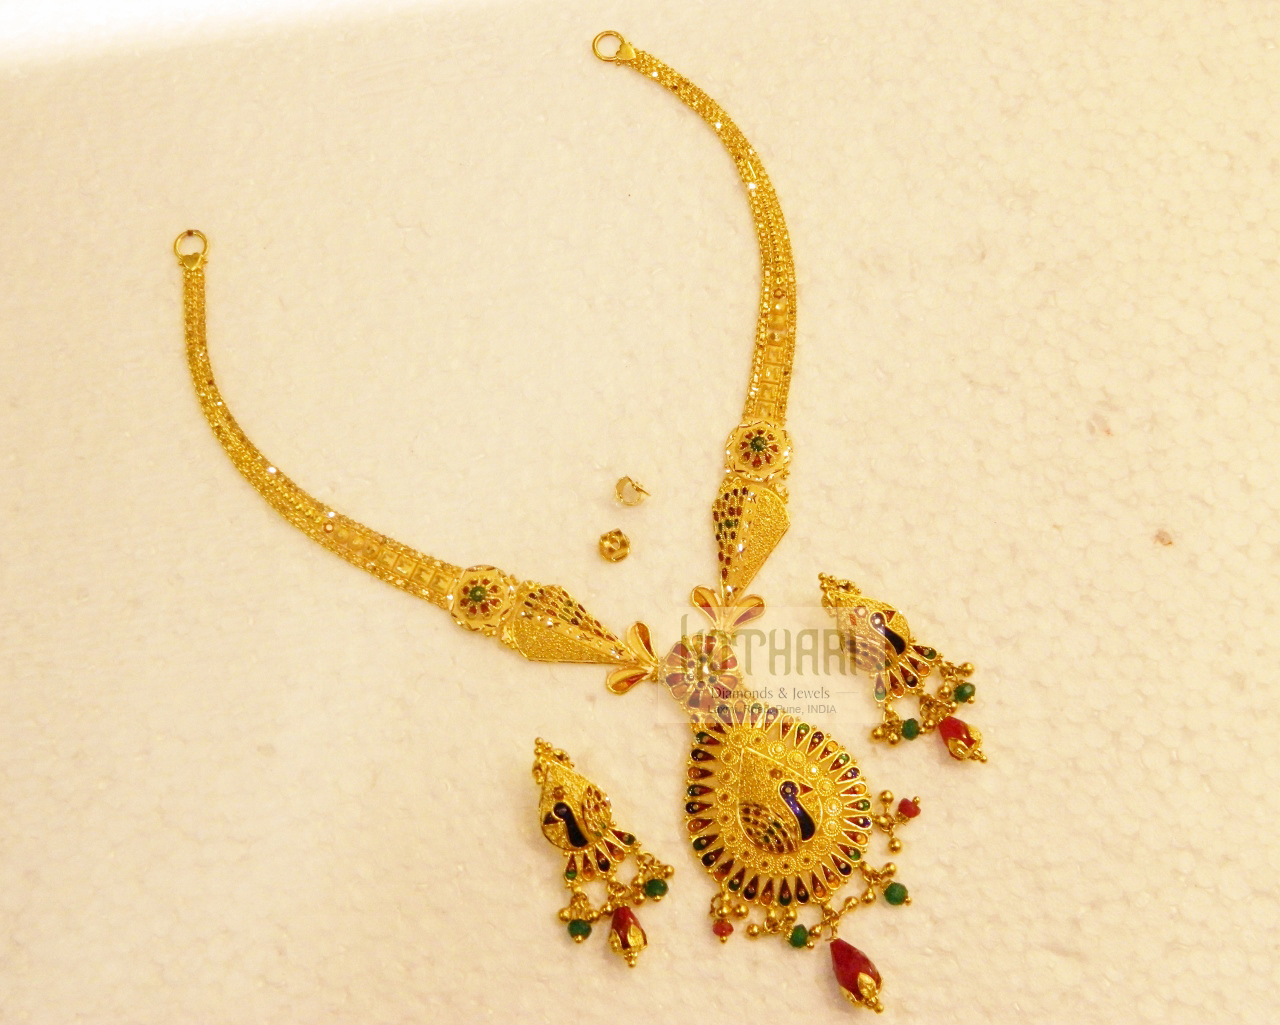 Necklaces / Harams - Gold Jewellery Necklaces / Harams (NK27712771 ...